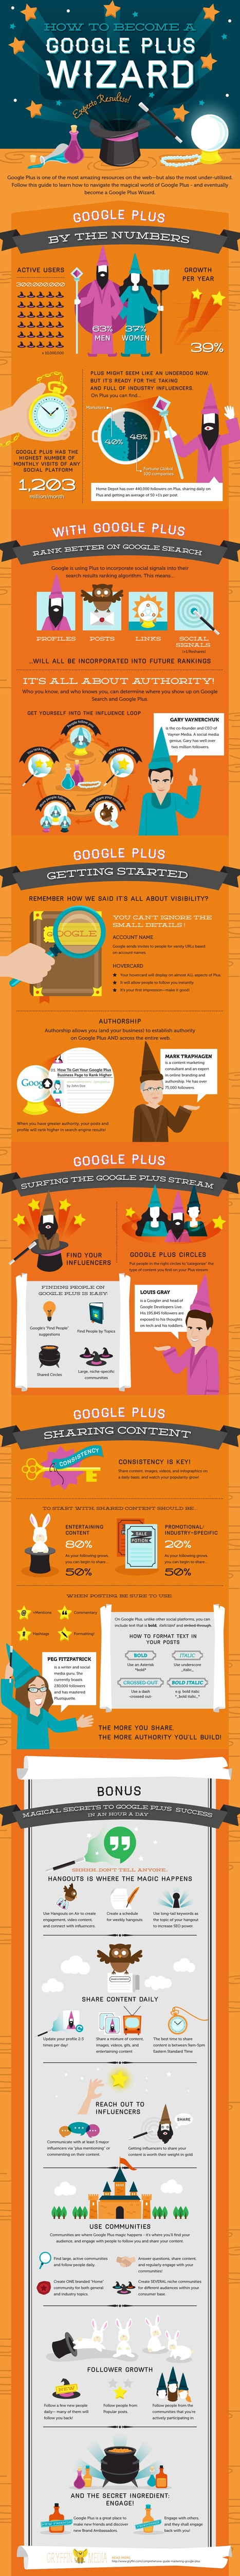 An Infographic Guide to Marketing on Google Plus   Social Media Today   Social Networker   Scoop.it